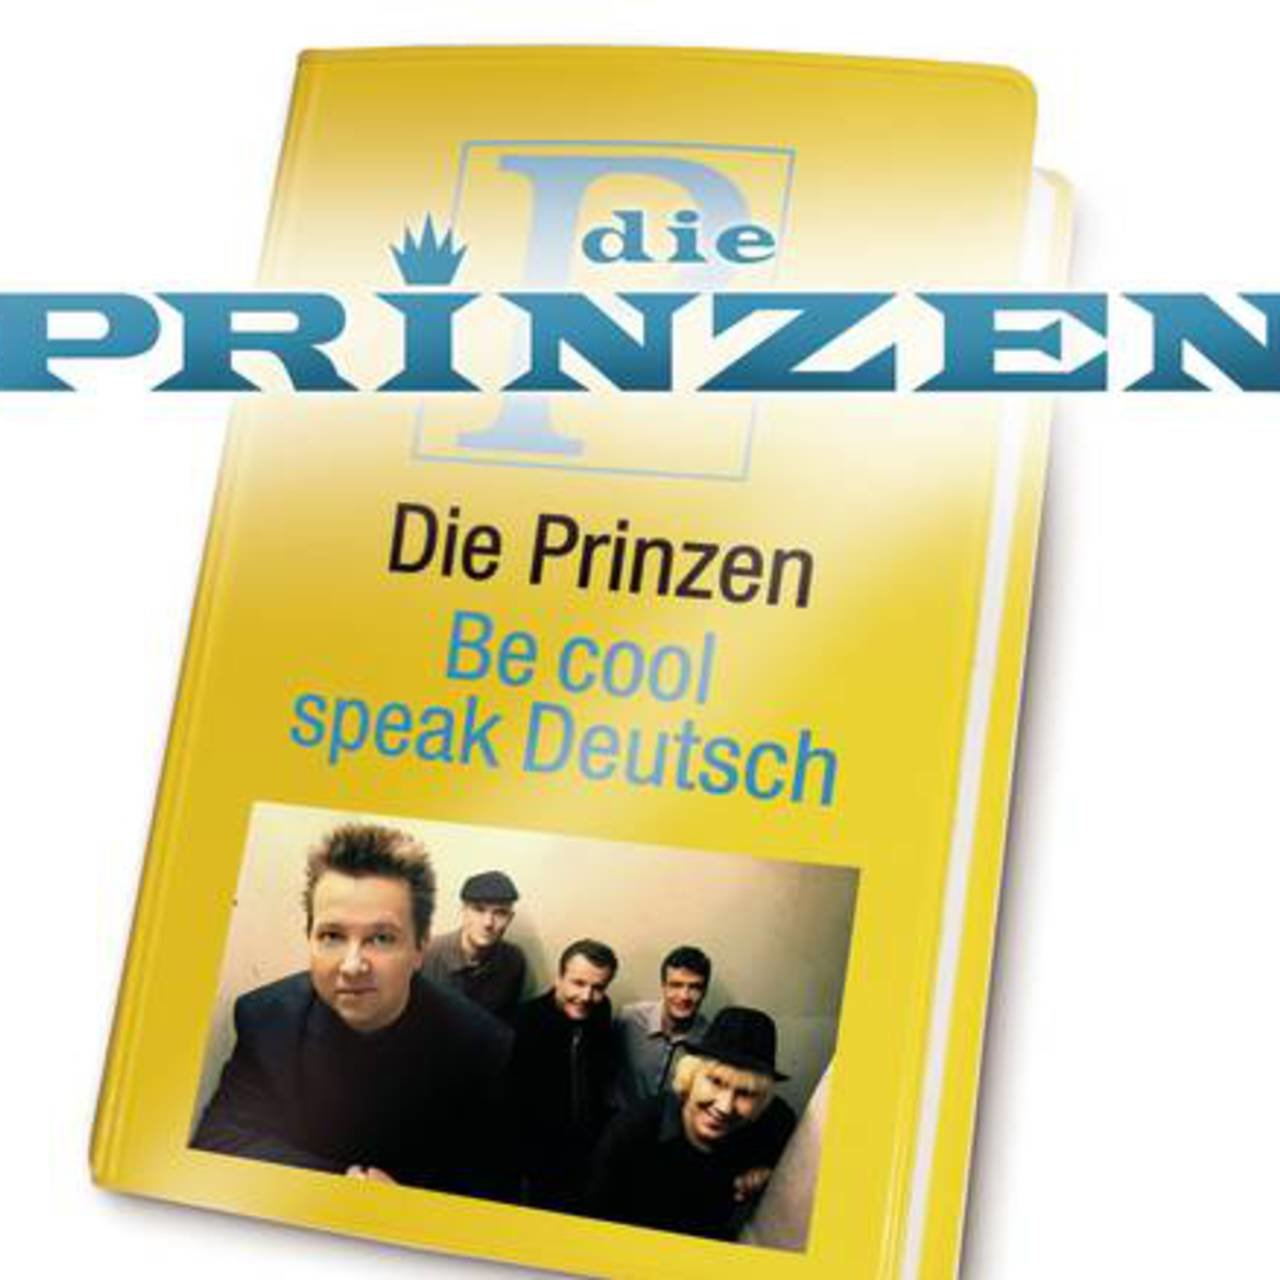 Be Cool Speak Deutsch